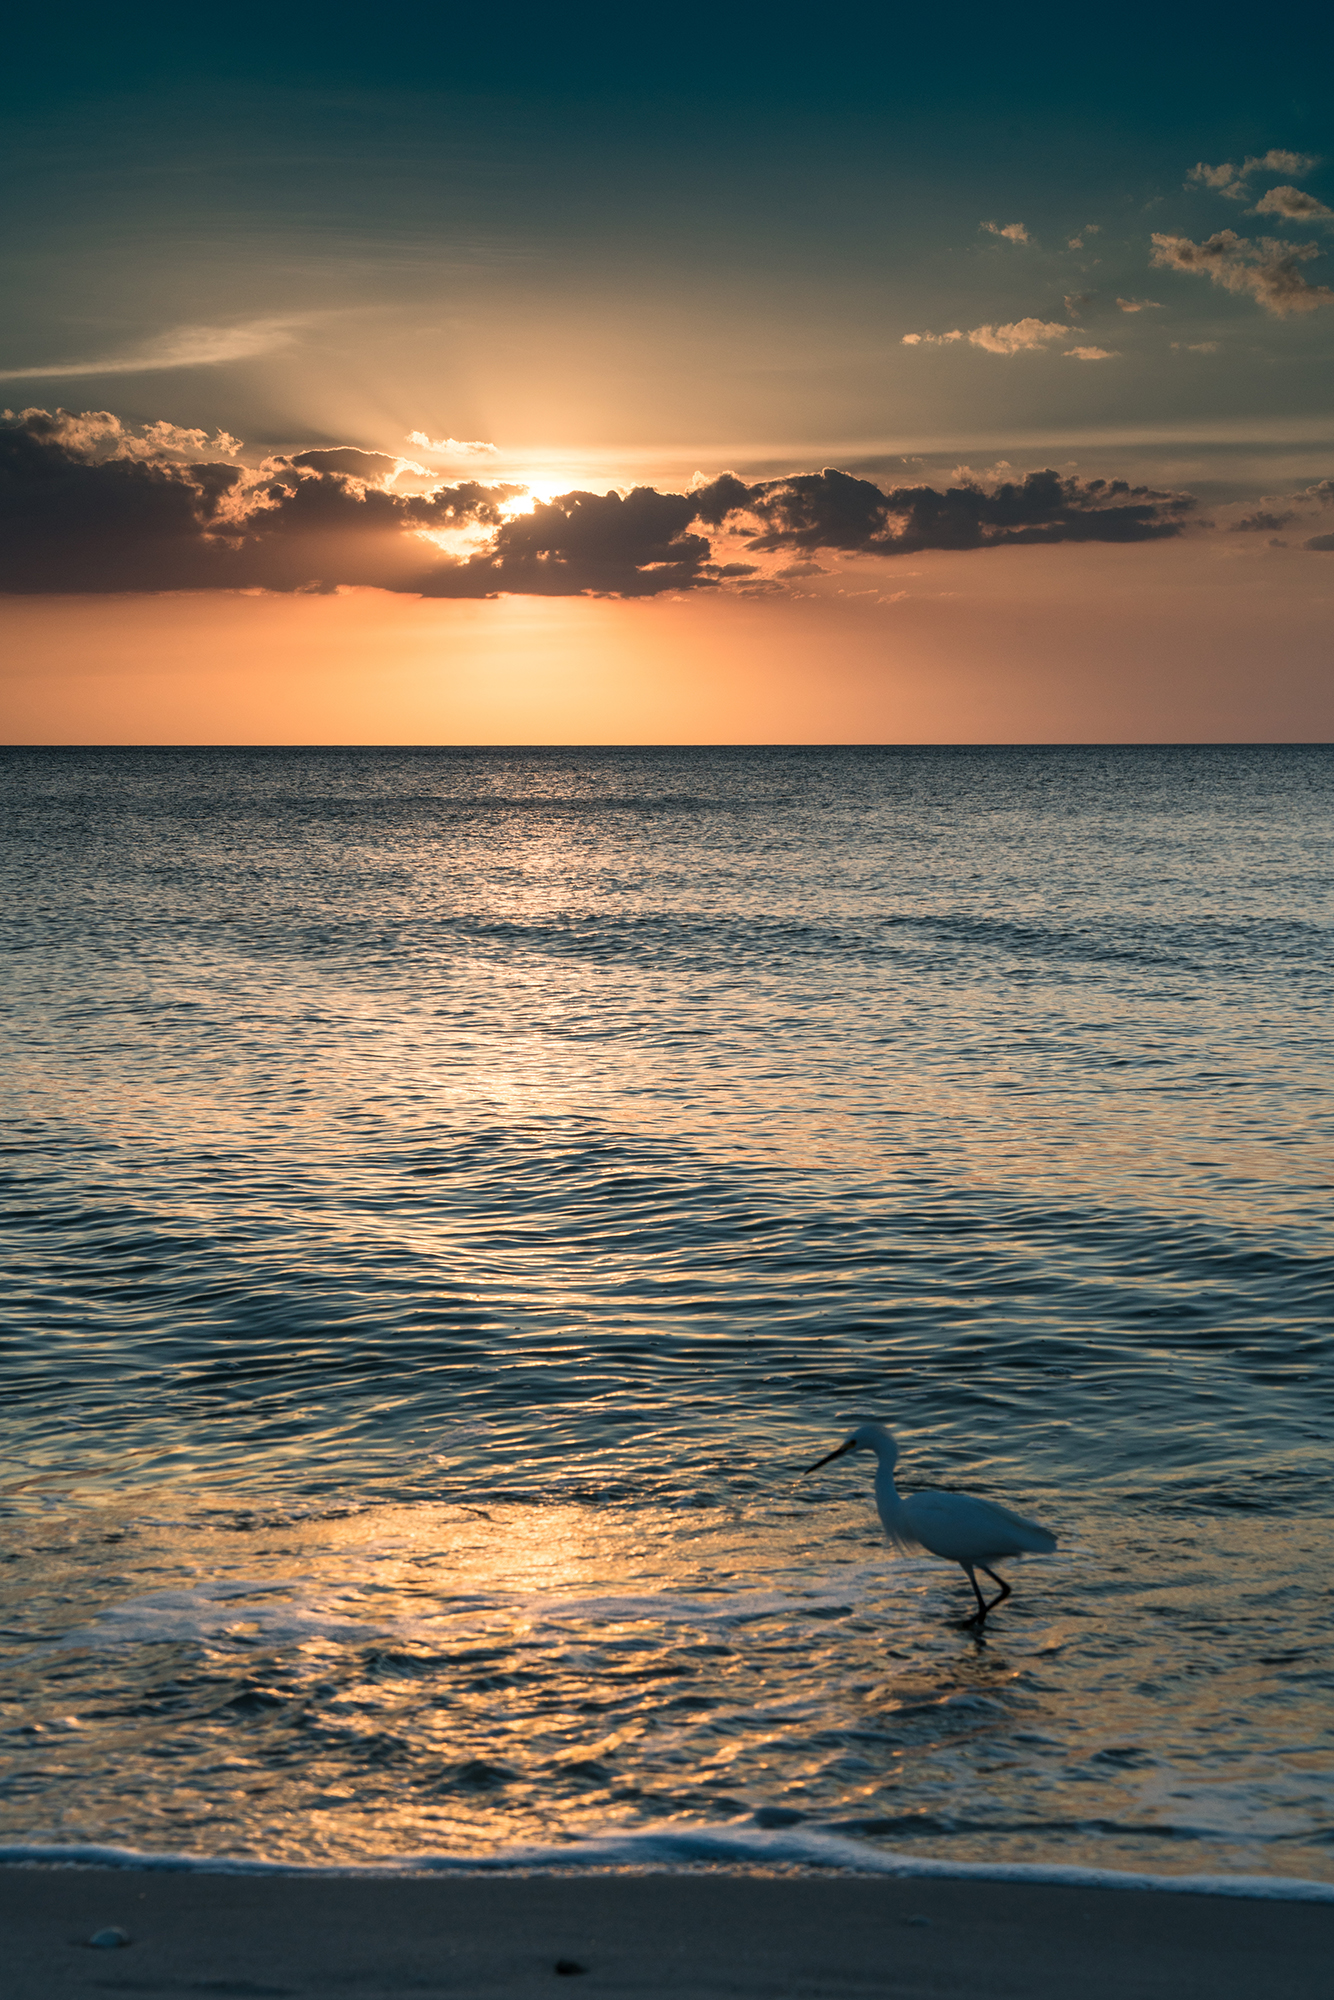 #sunset, #egret, #clouds, #waterscape, #reflection, #gulf, #florida, #naples